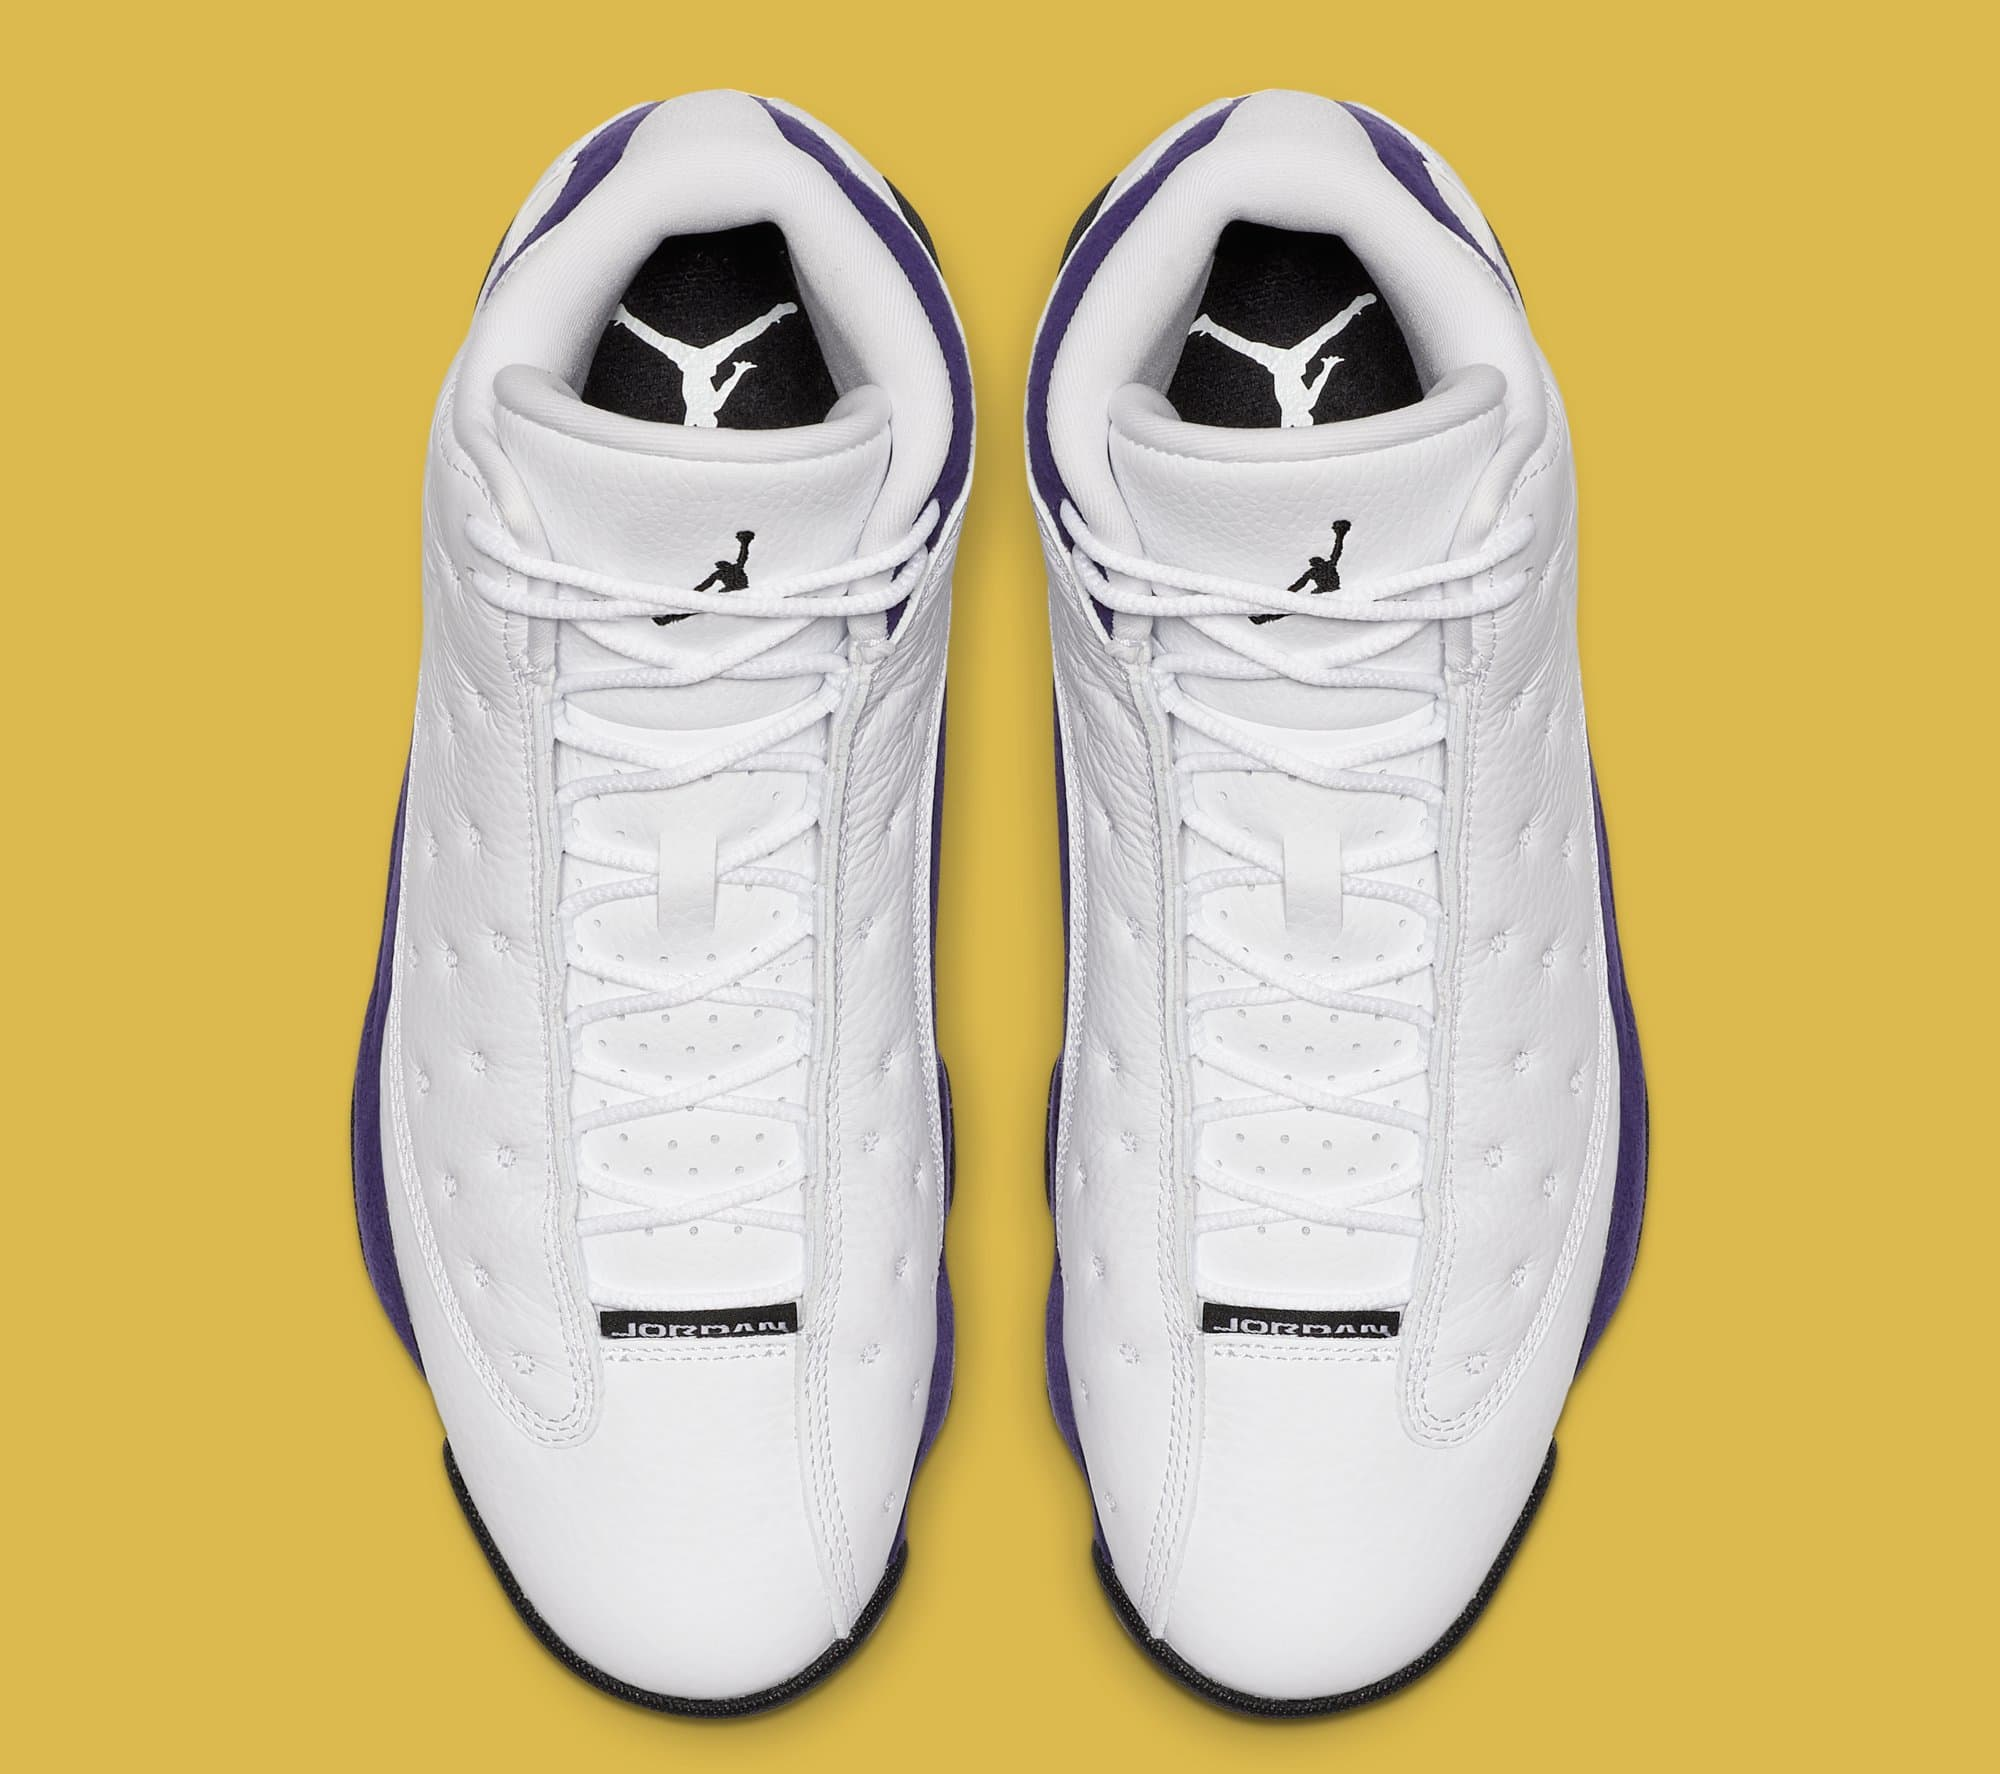 Air Jordan 13 'Lakers' White/Black/Court Purple/University Gold 414571-105 (Top)